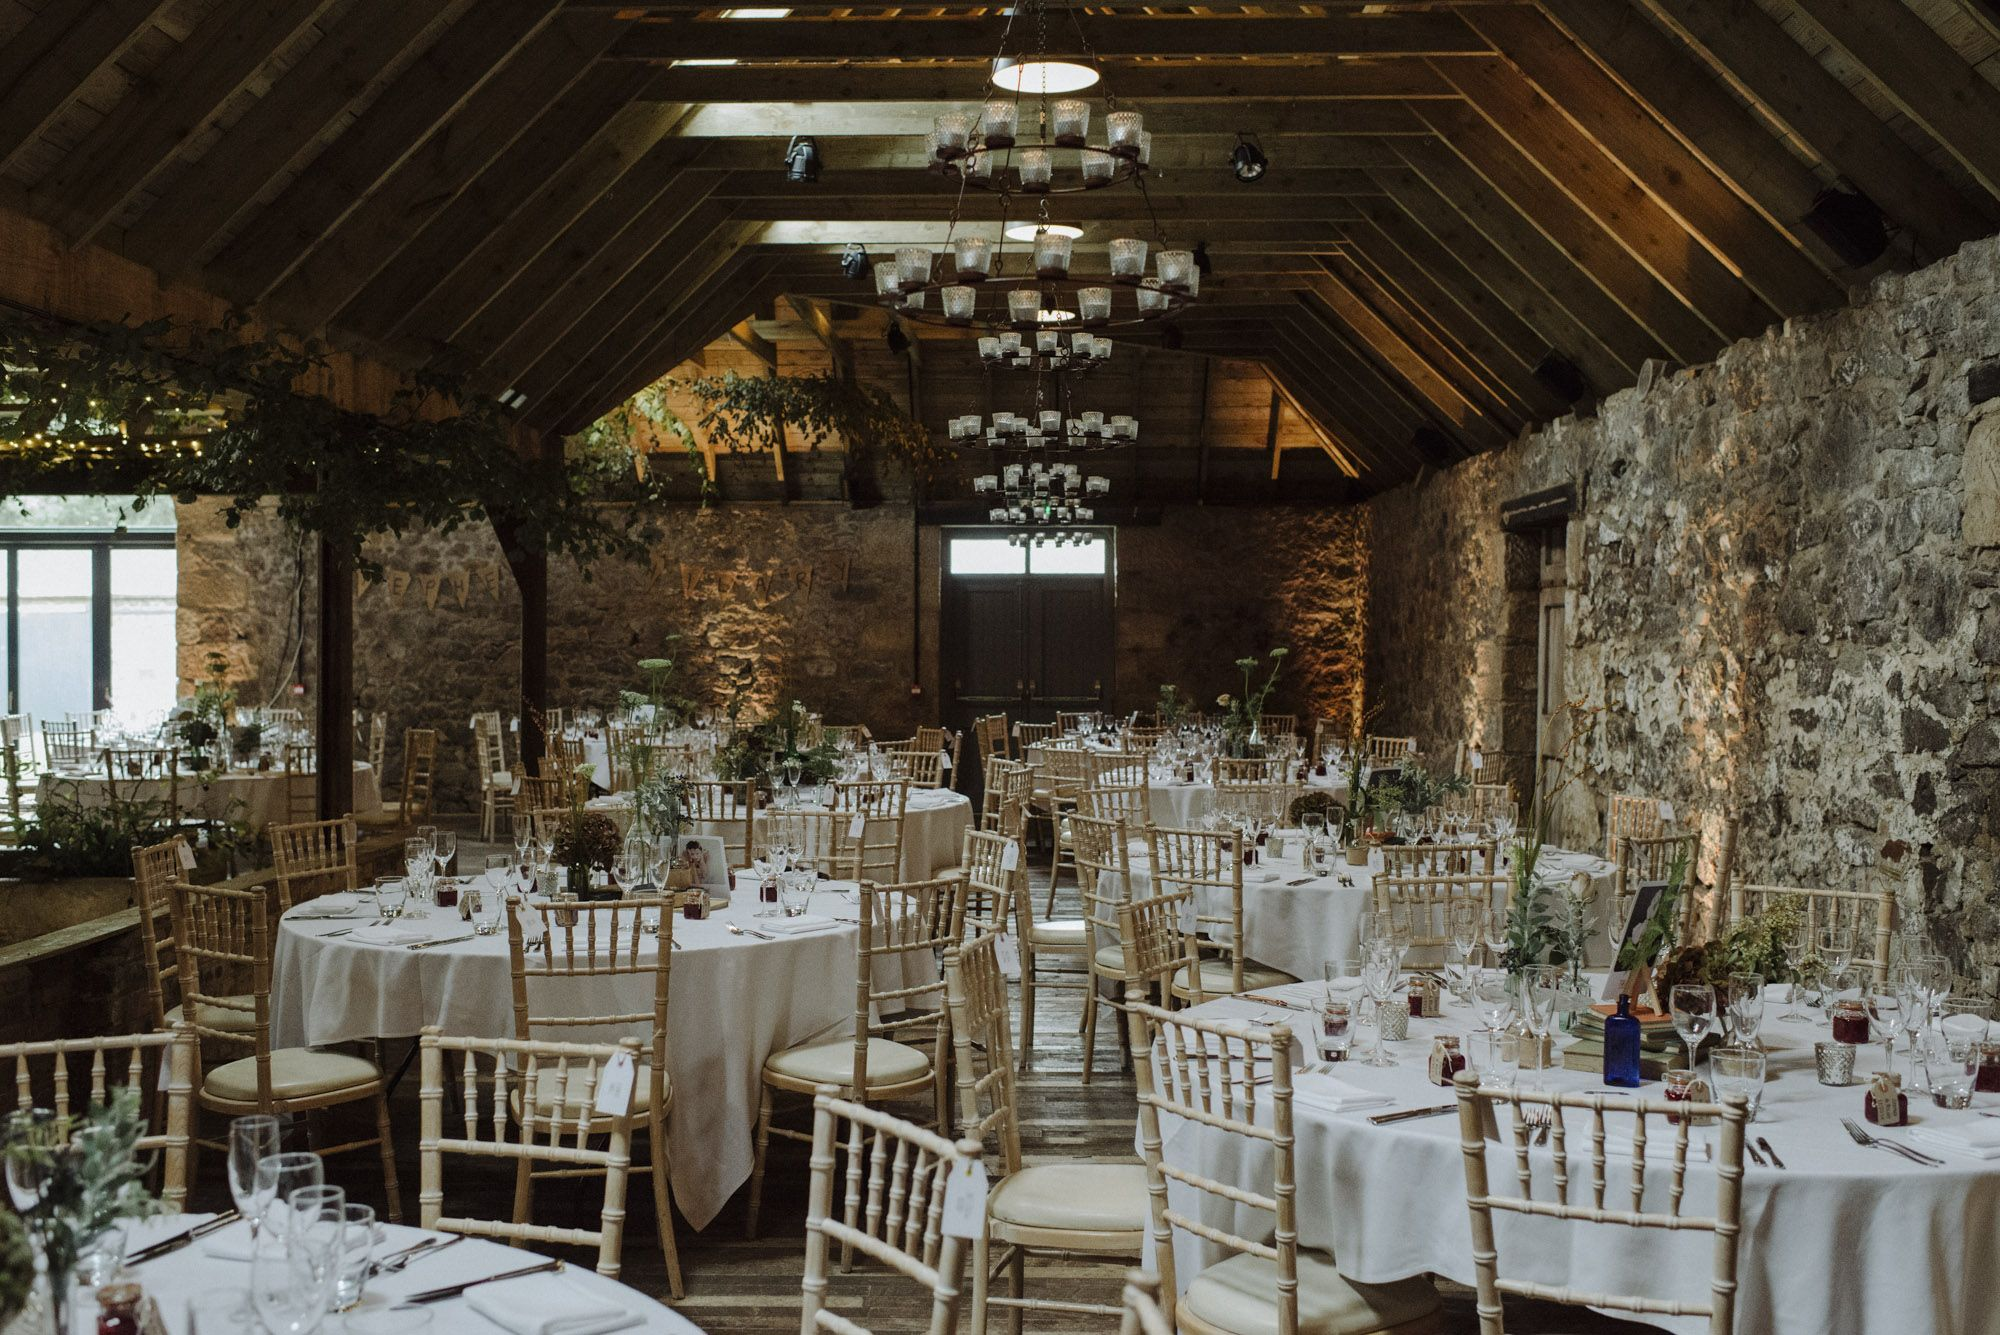 barn wedding venues twin cities%0A The Byre at Inchyra Perthshire event wedding barn home   wedding    Pinterest   Wedding barns  Wedding and Wedding venues